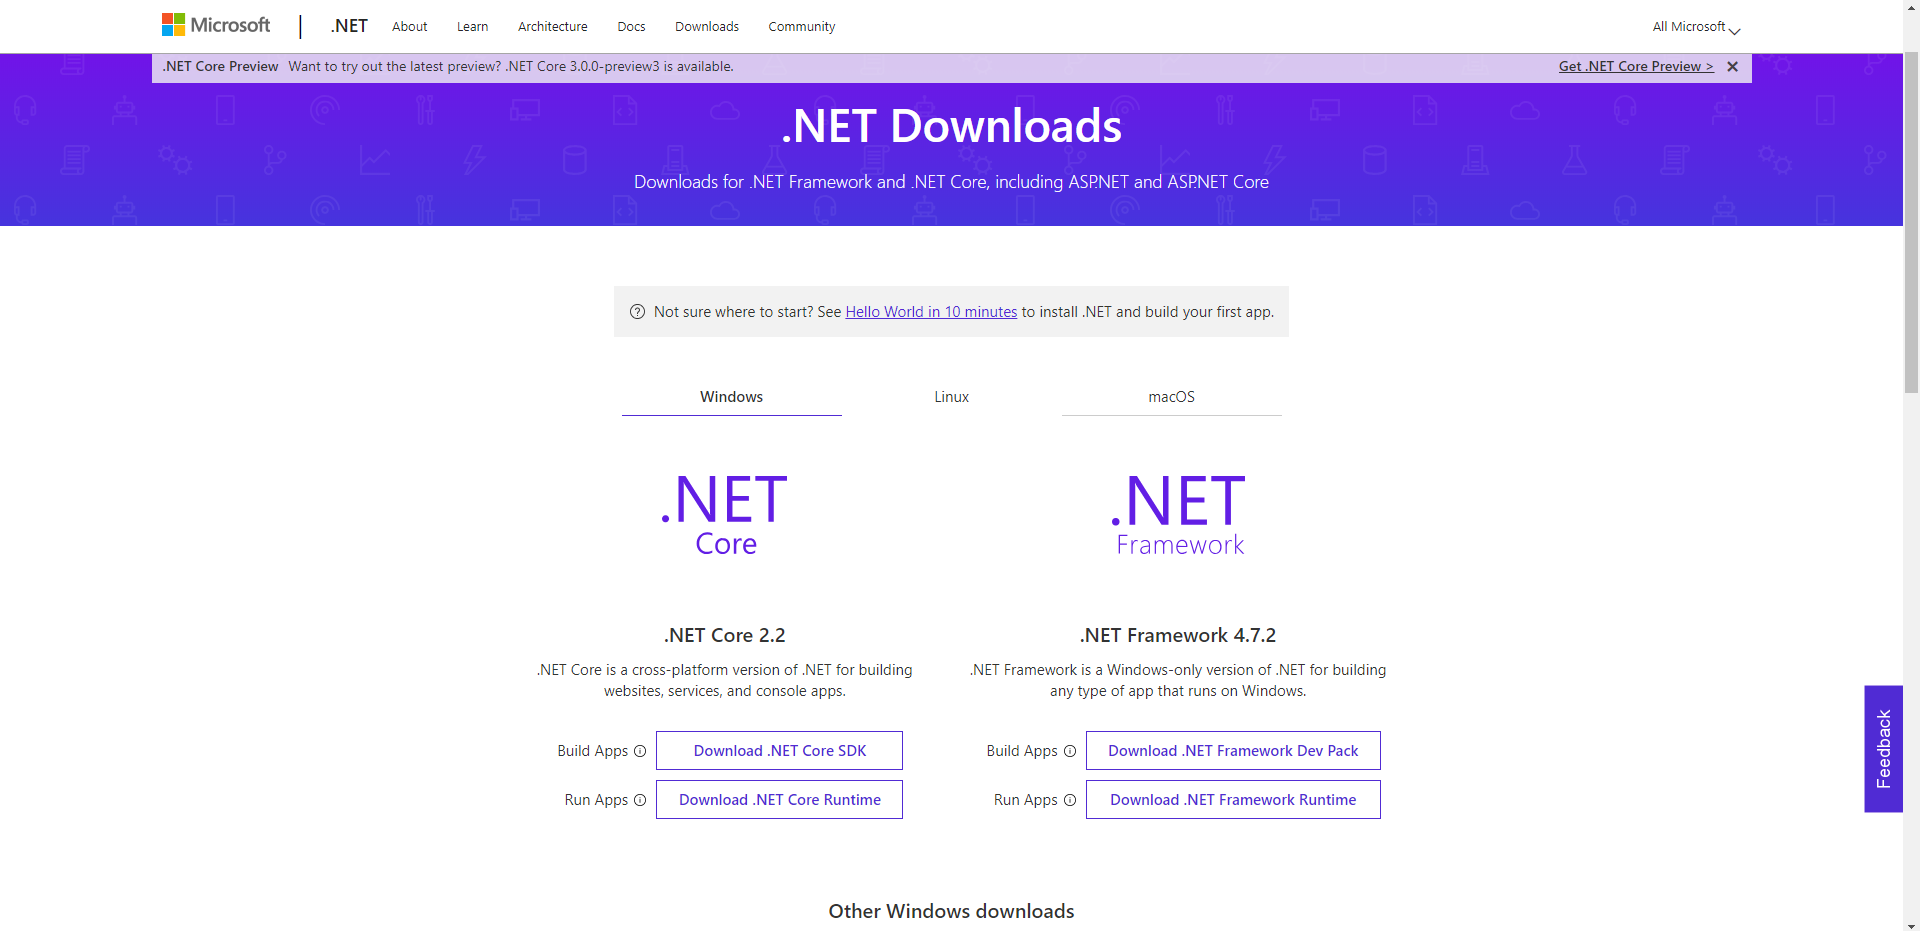 blog_web_others_netcore_01.png